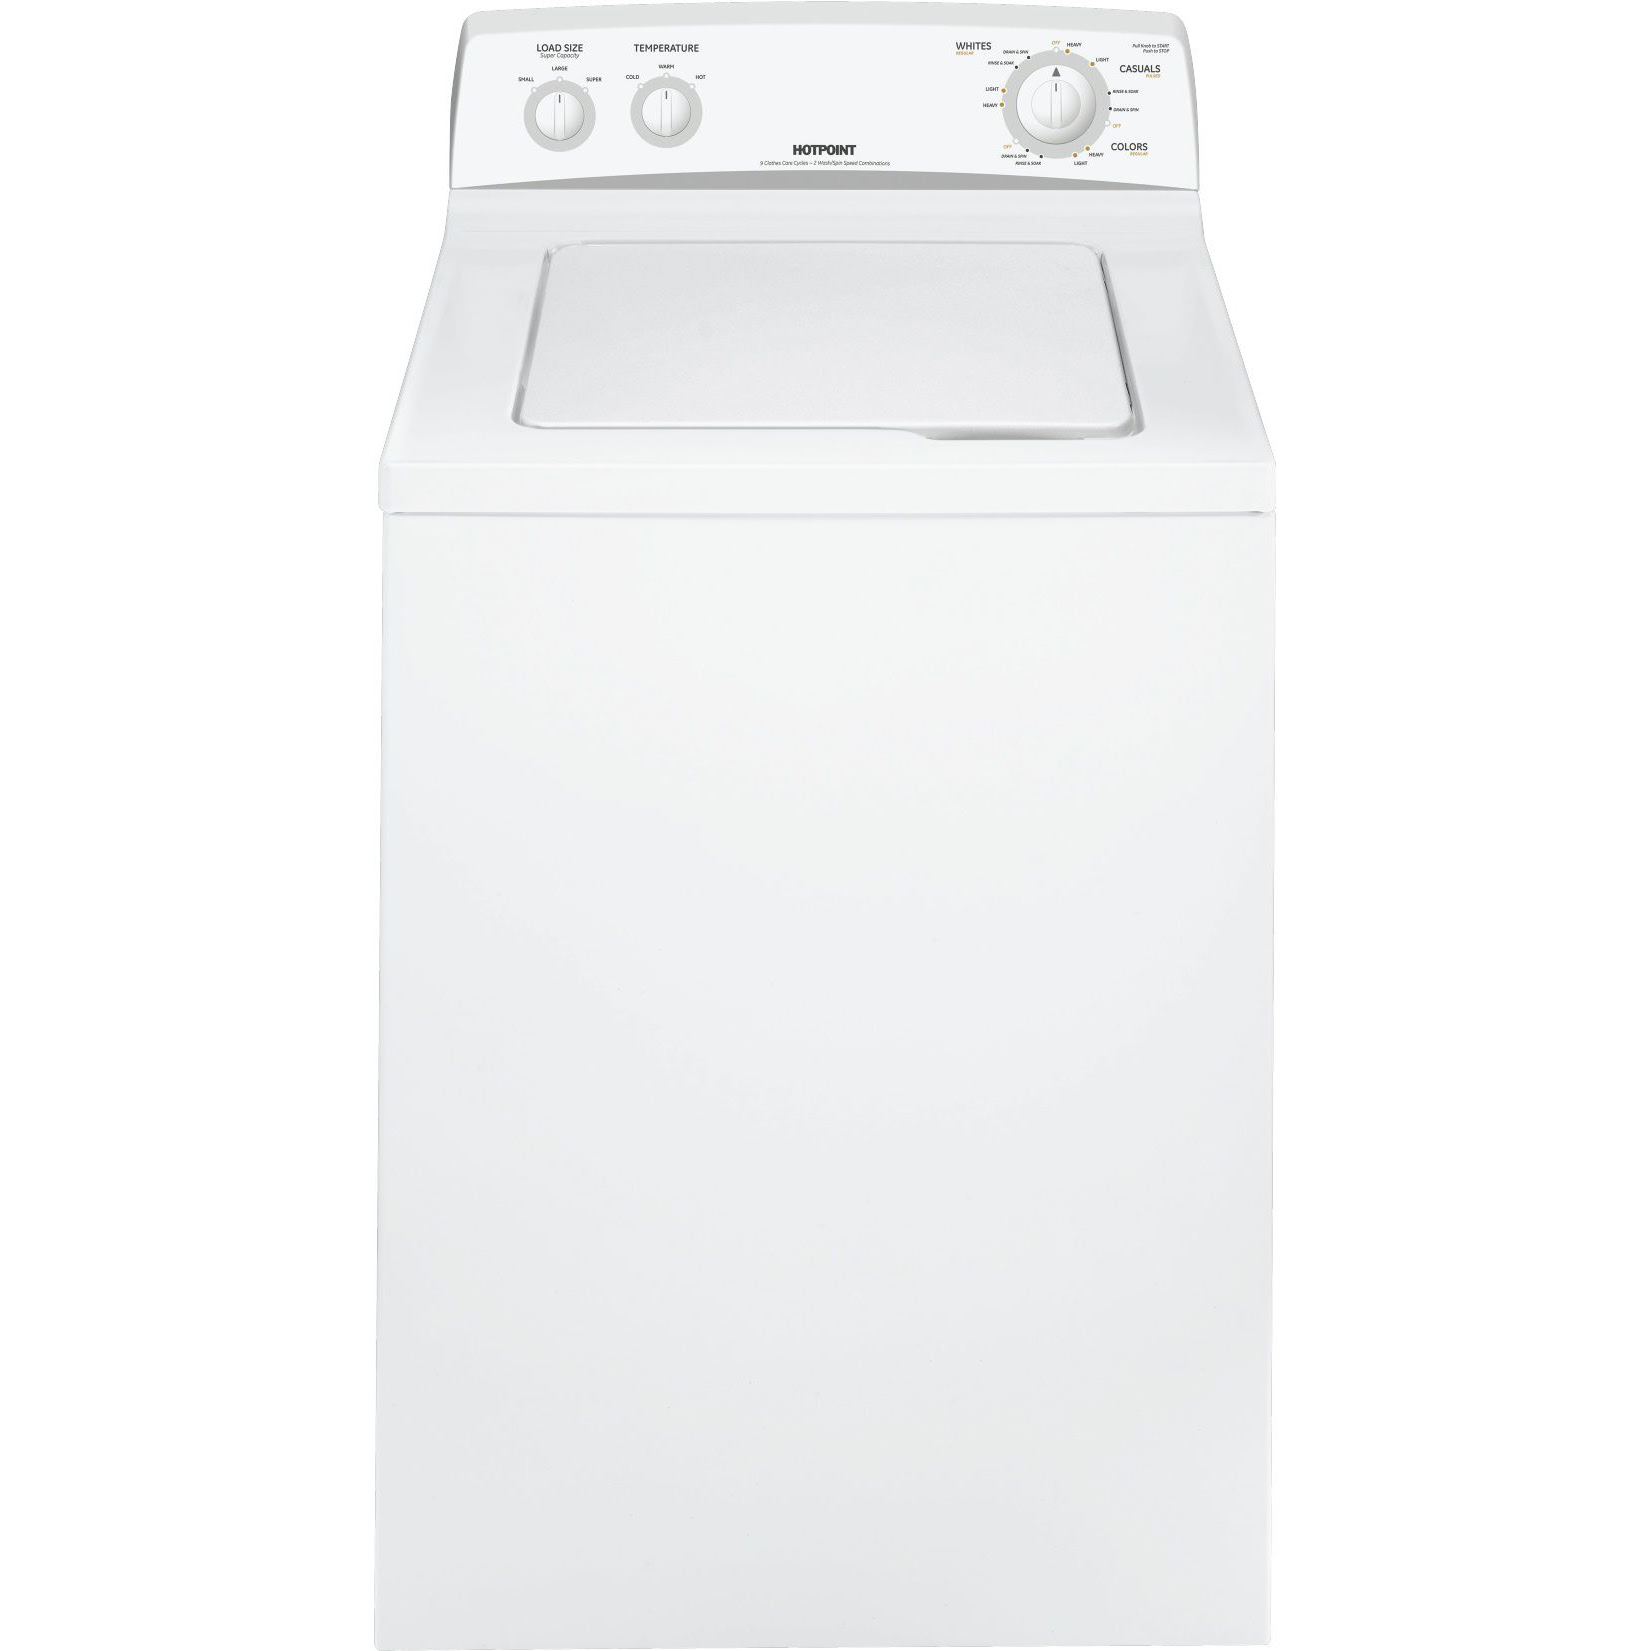 "UPC Hotpoint HSWP1000MWW 27"" Top Load Washer with 3 5"